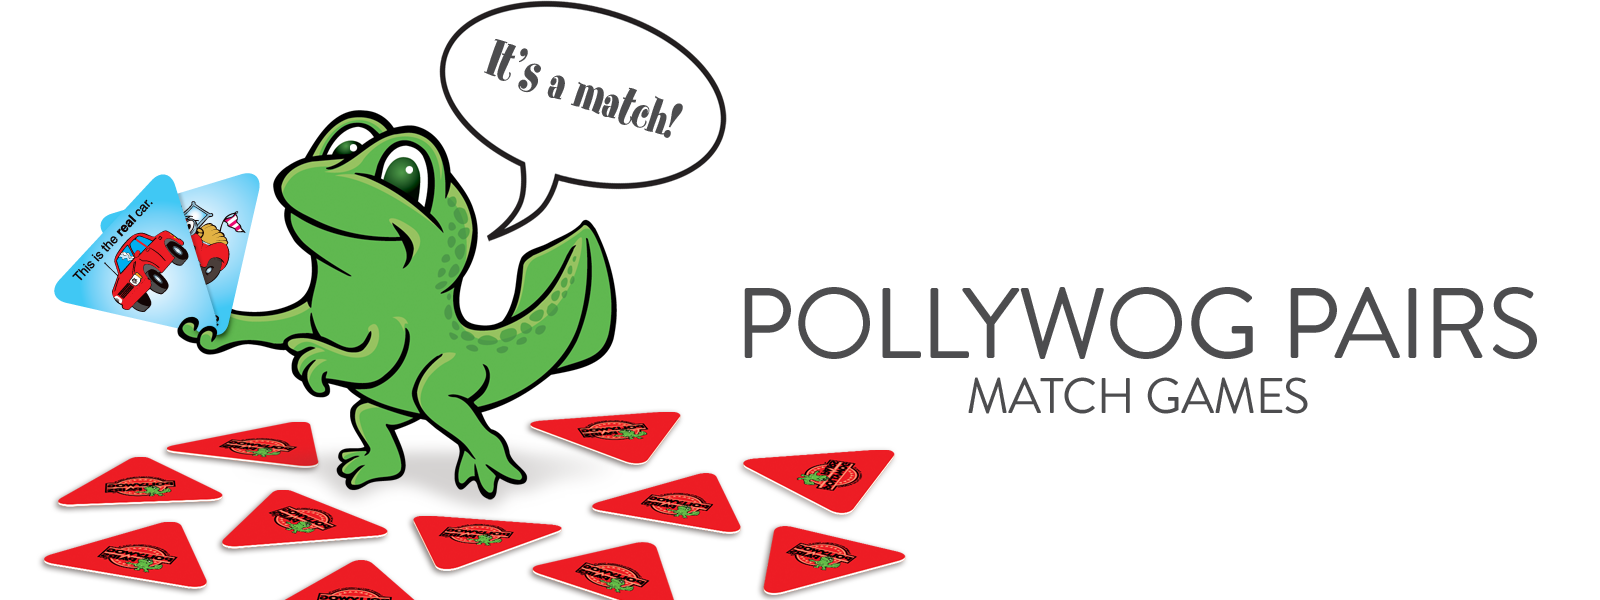 Pollywog Pairs Match Games